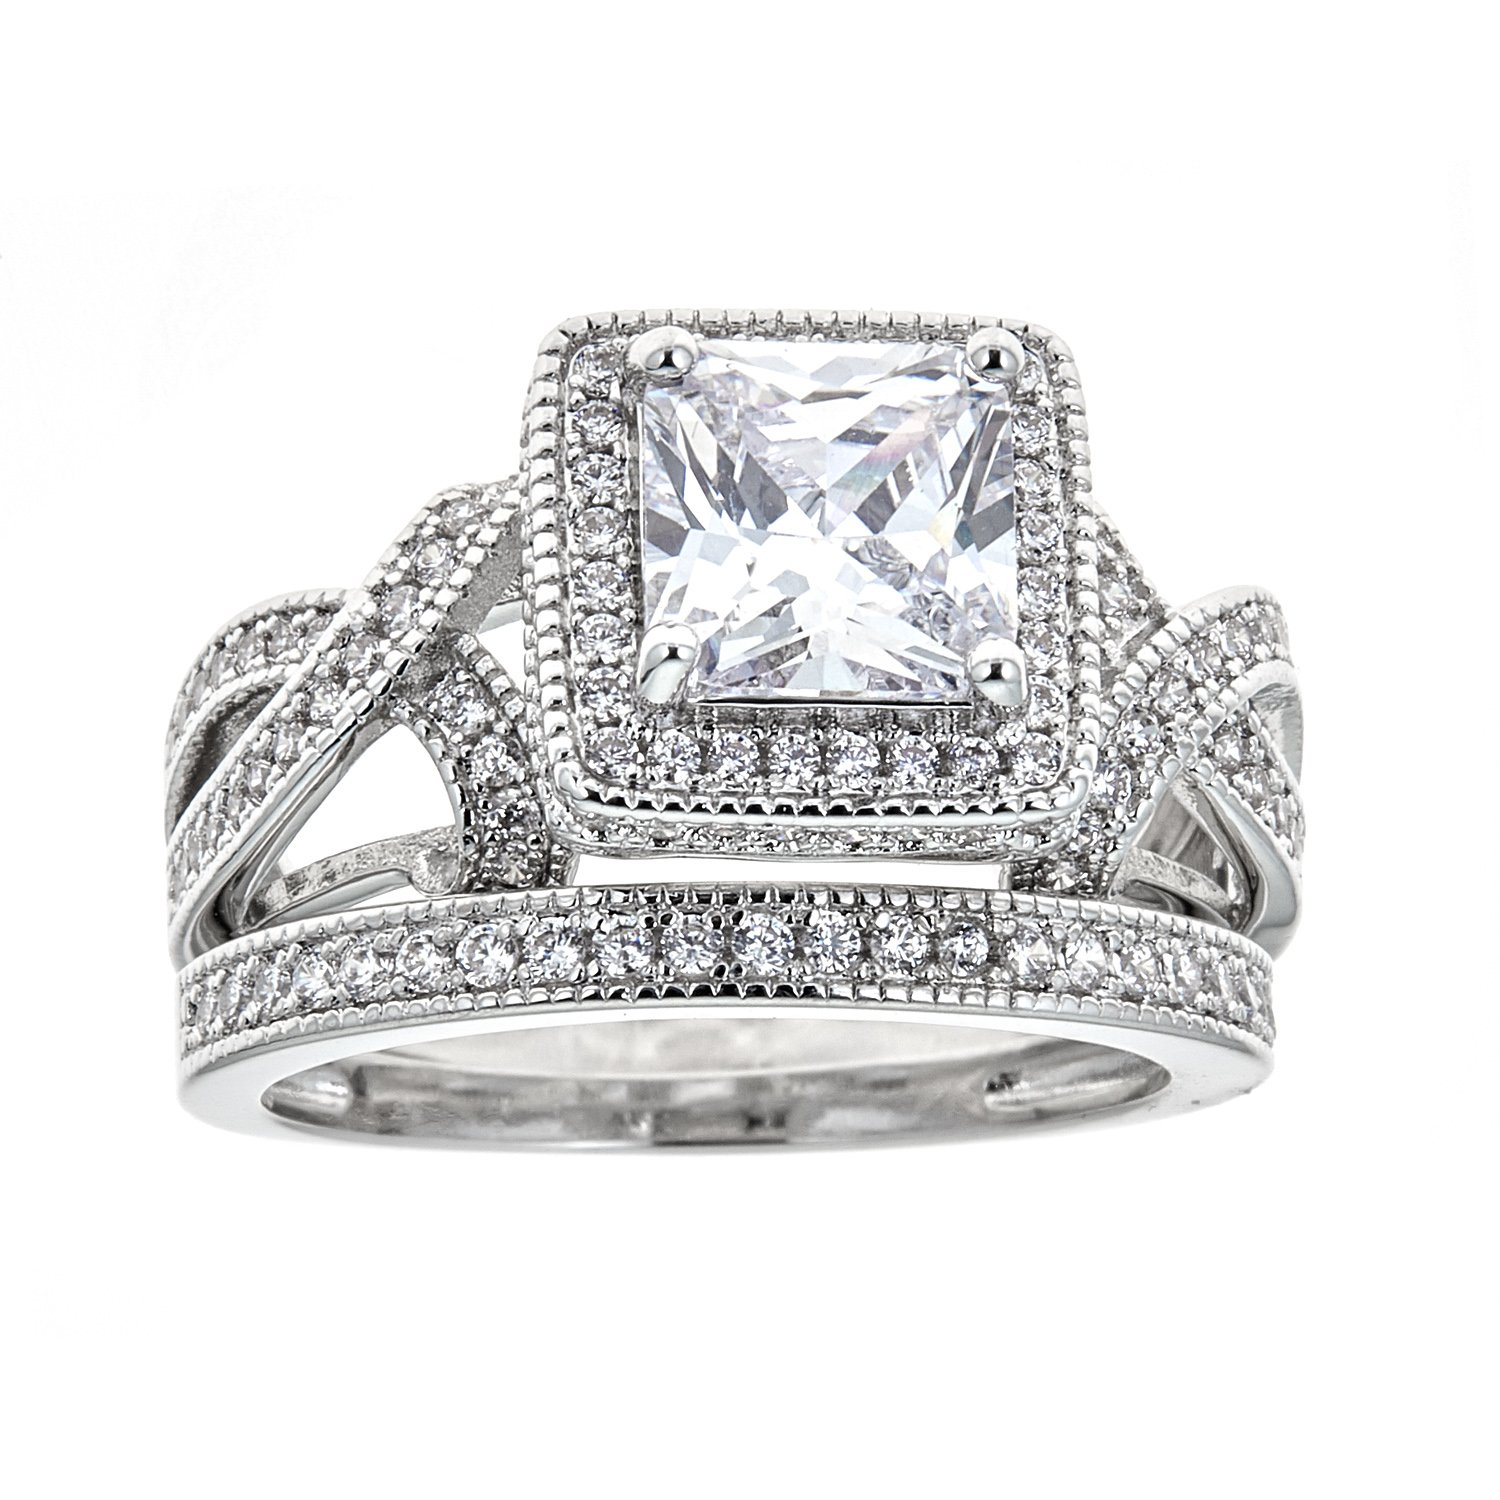 7ab9e1ae51967 Barzel White Gold Plated Princess-Cut Cubic Zirconia Bridal Ring Set